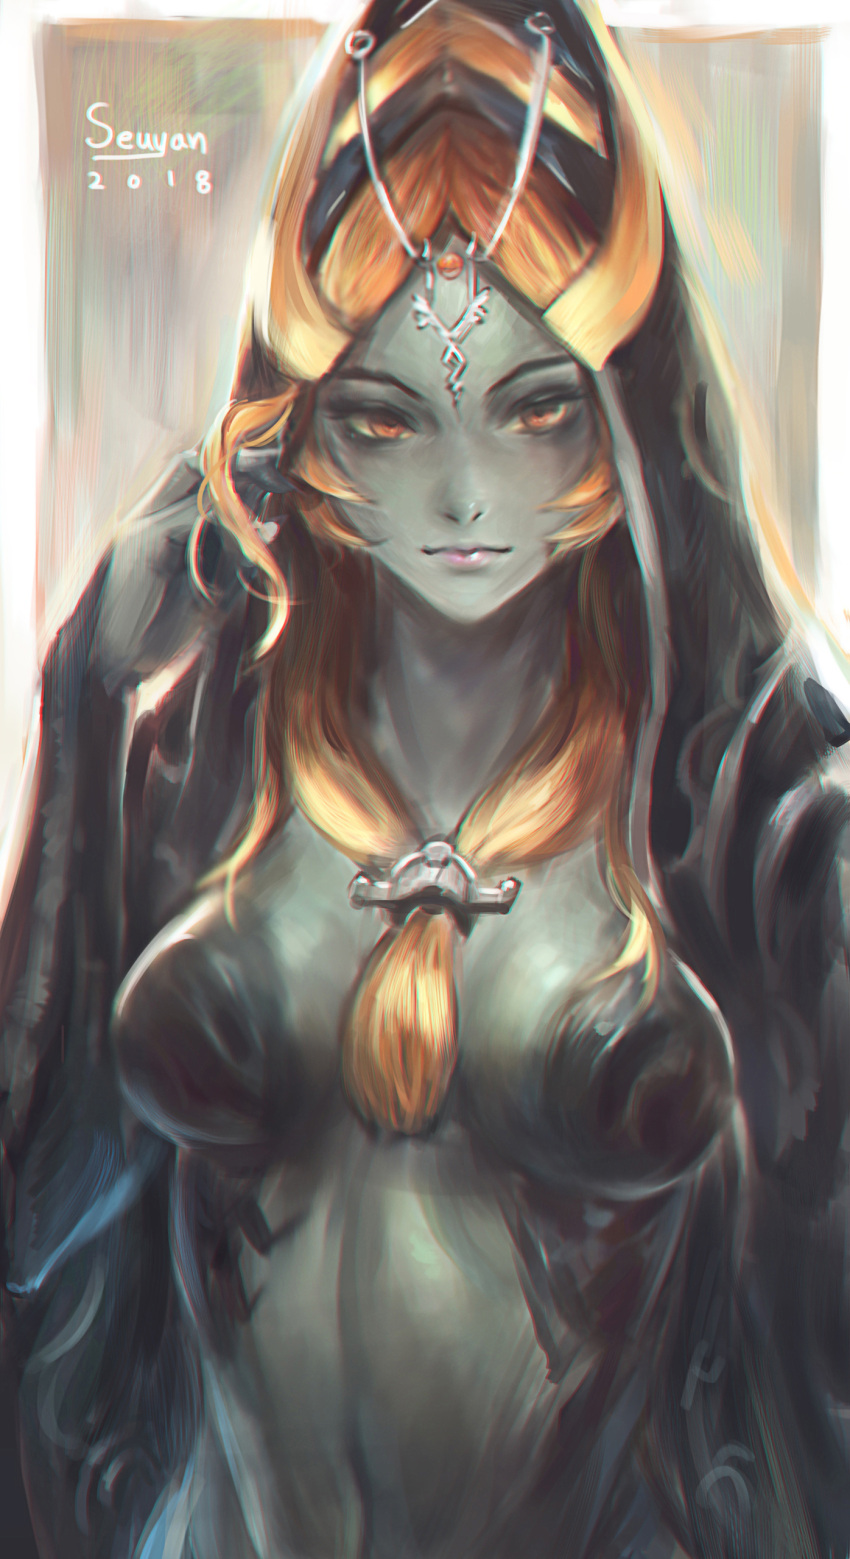 1girl absurdres blue_skin breasts highres hood long_hair looking_at_viewer midna midna_(true) orange_hair pointy_ears red_eyes seuyan simple_background smile solo spoilers the_legend_of_zelda the_legend_of_zelda:_twilight_princess